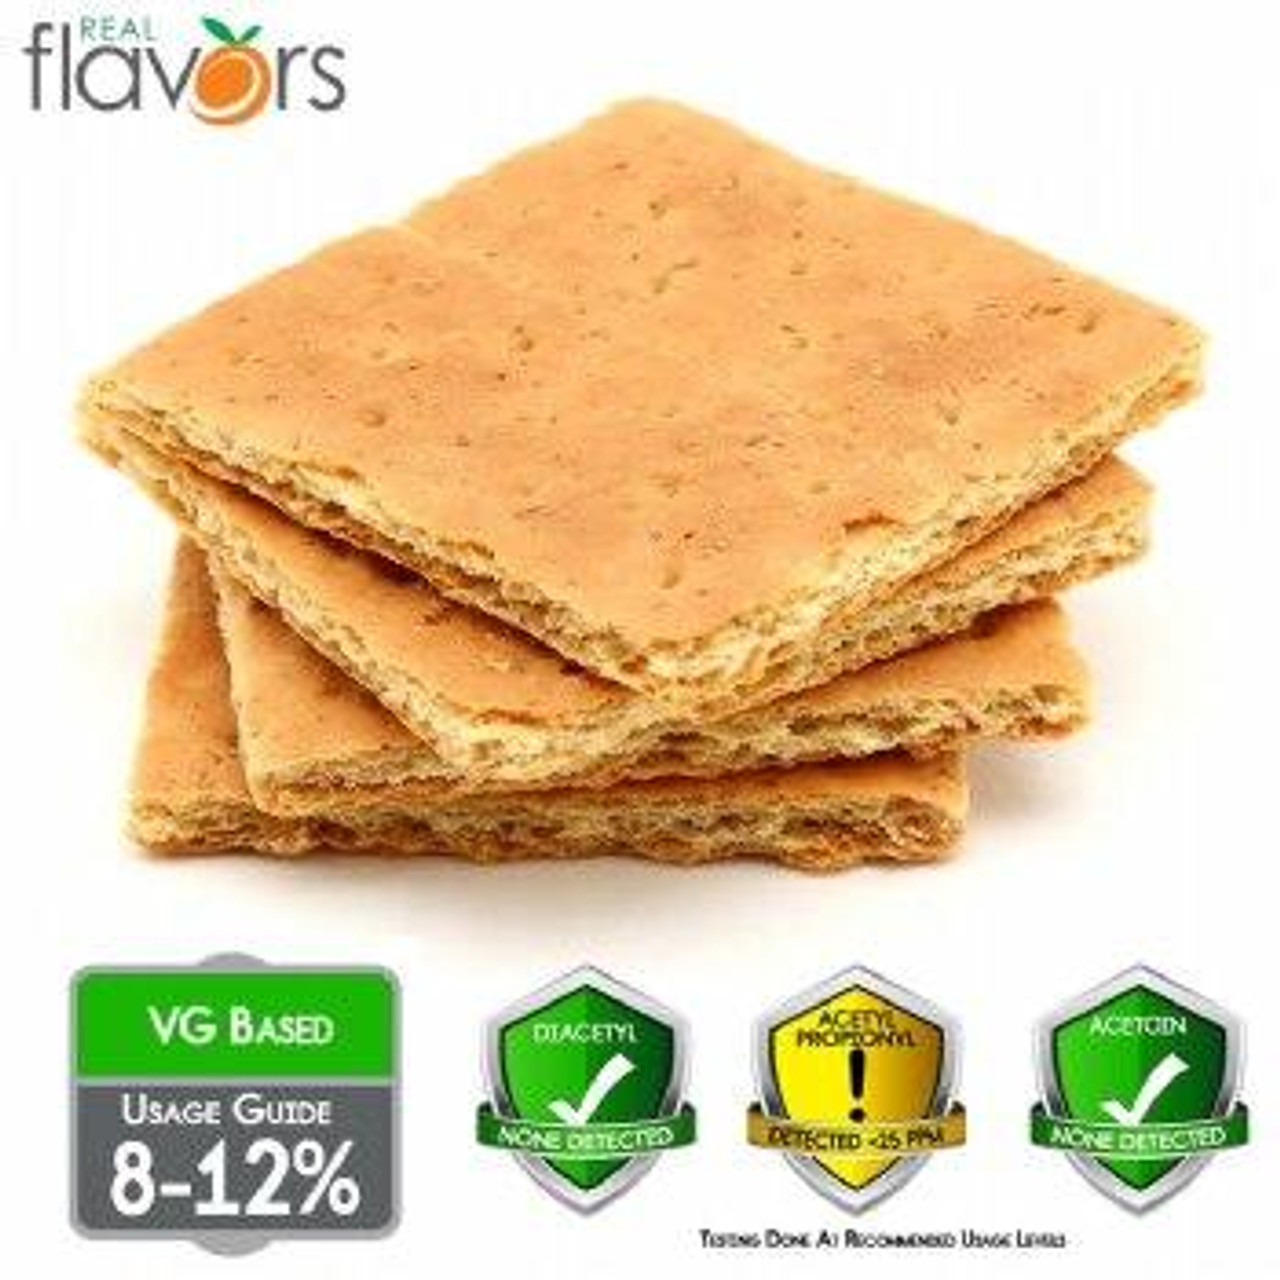 Real Flavors Flavours GRAHAM CRACKER VG RF